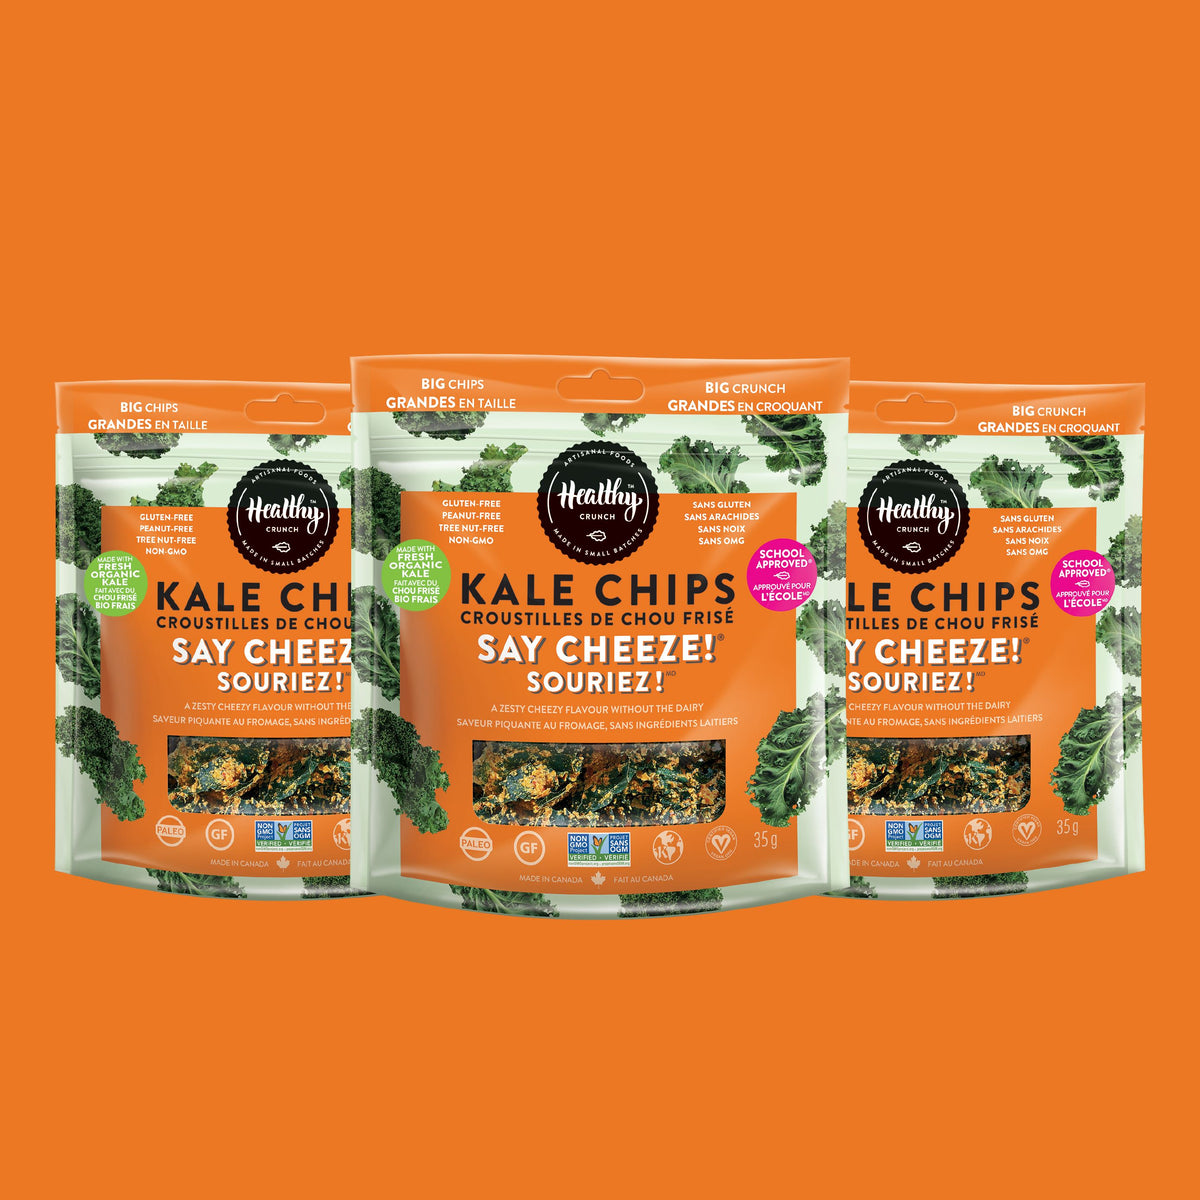 Say Cheeze! Kale Chips